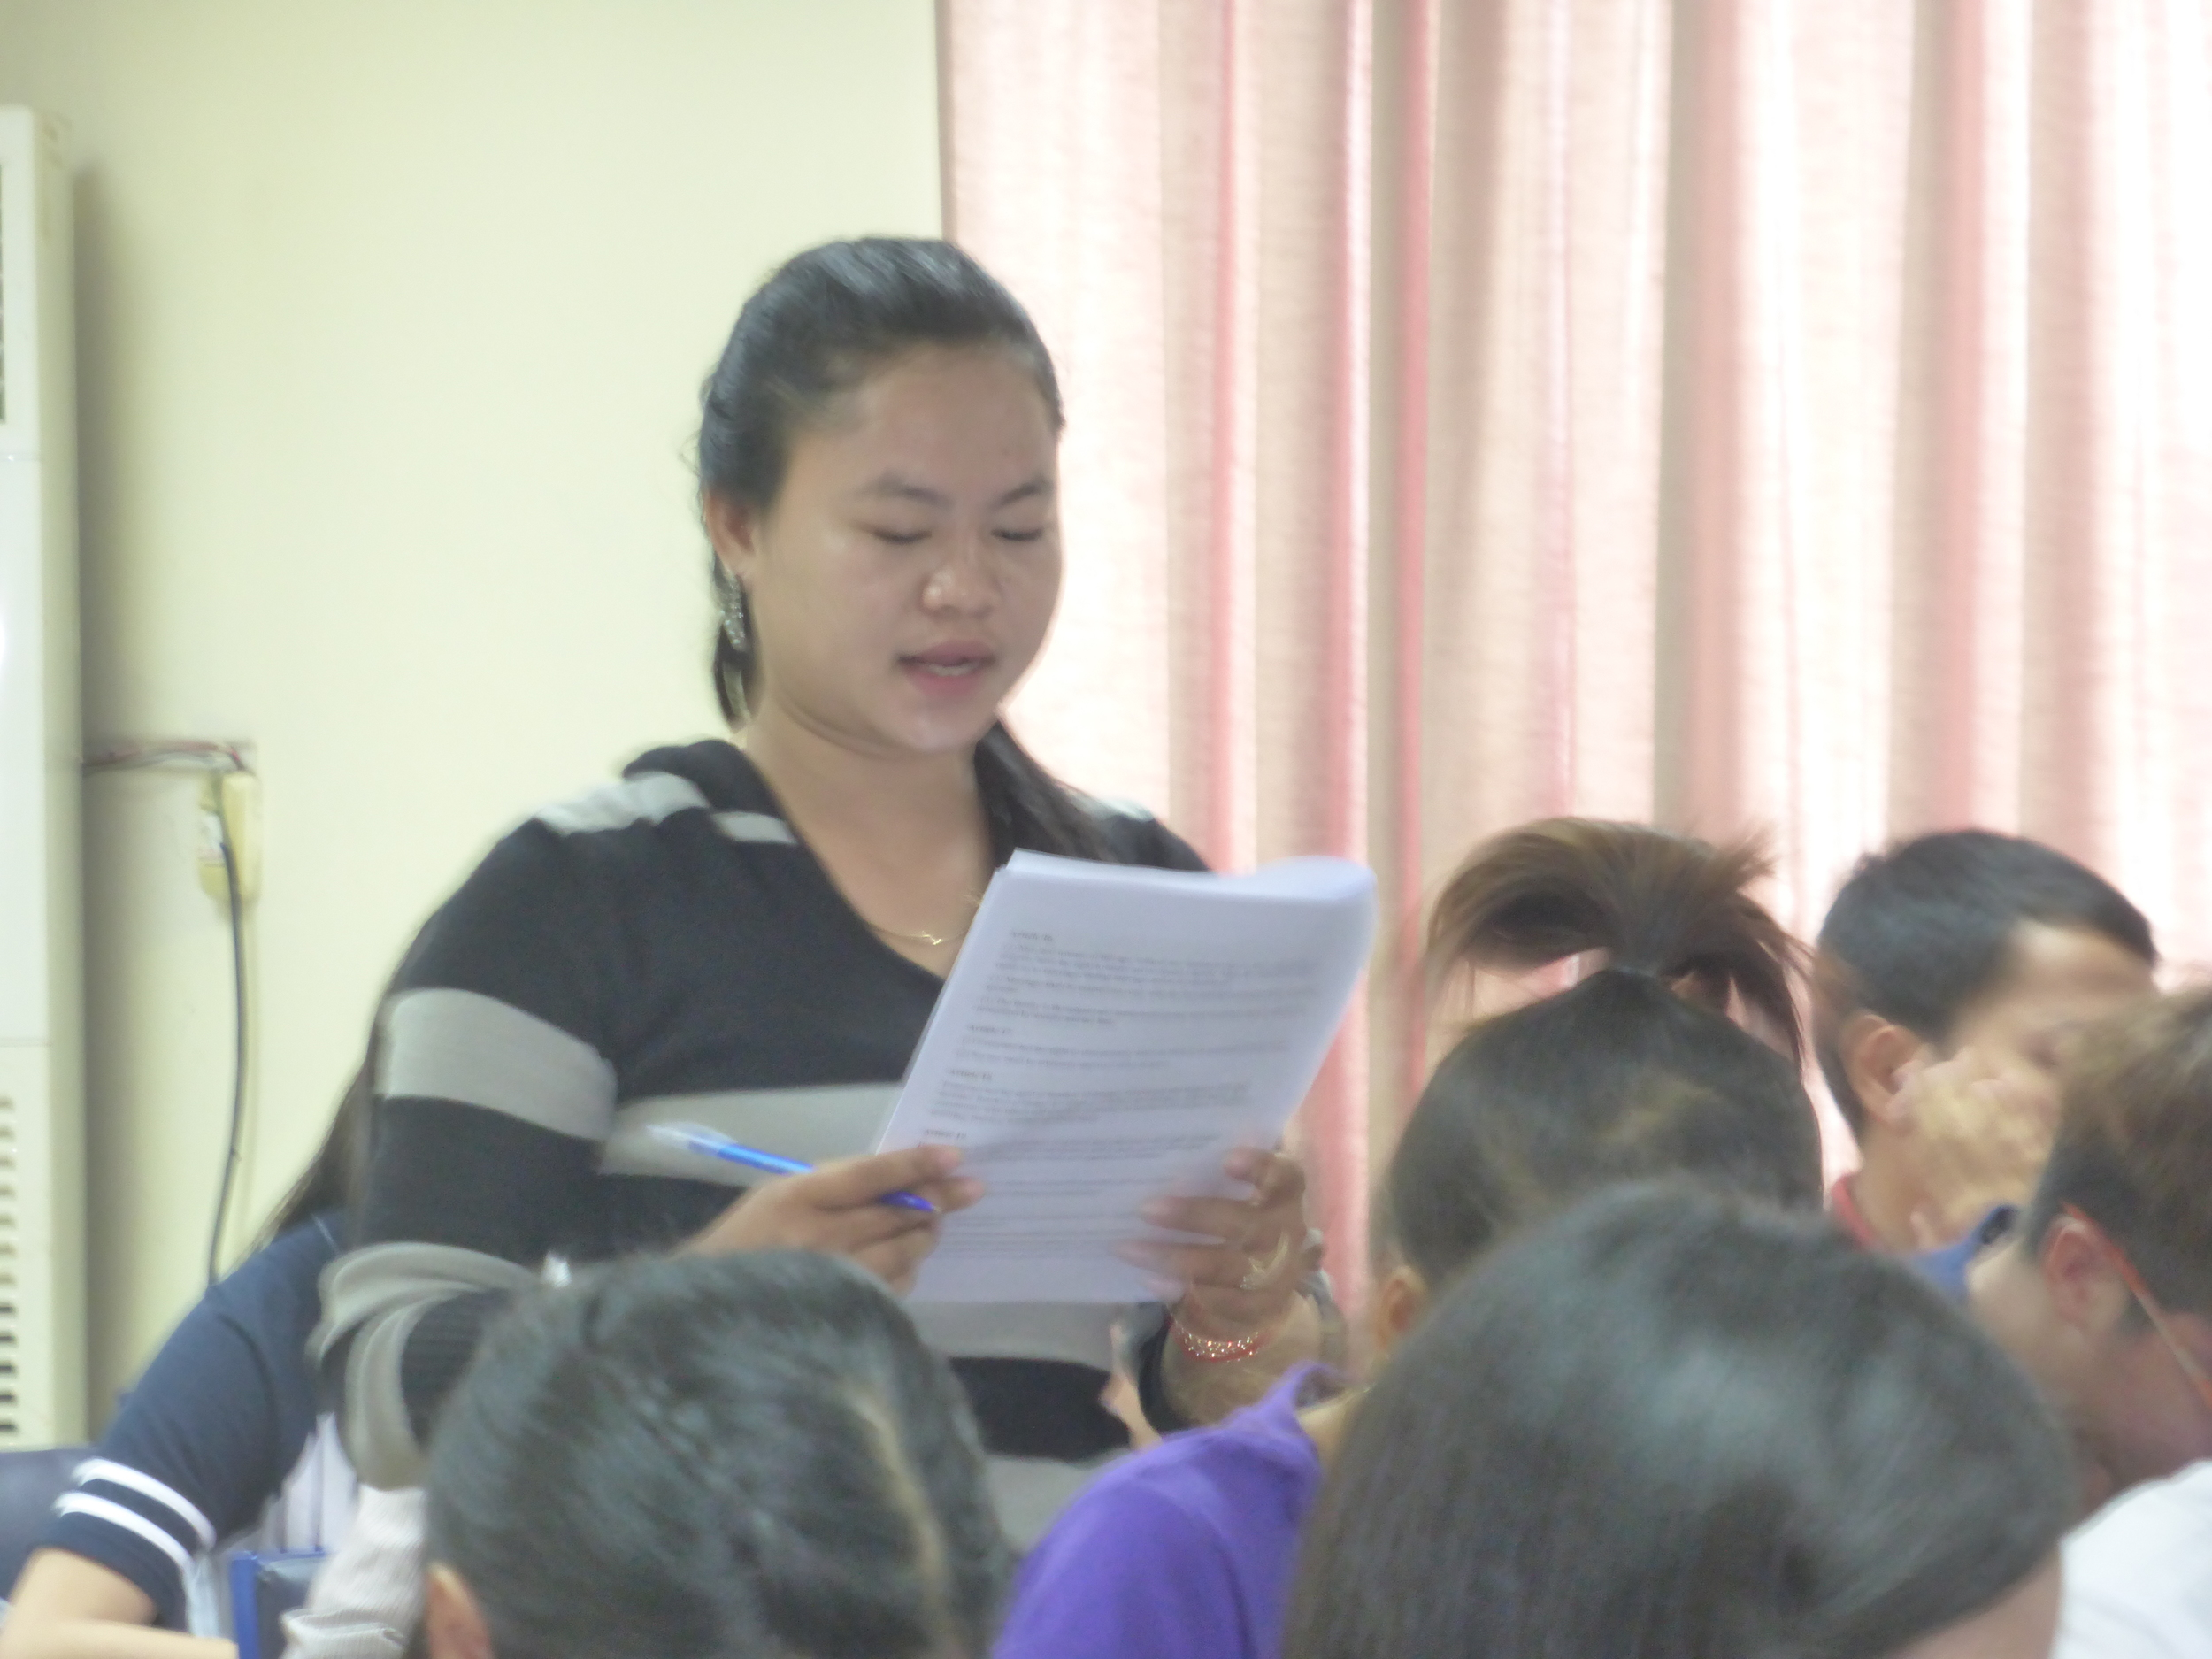 A student reads part of the the Universal Declaration of Human Rights aloud to her classmates.